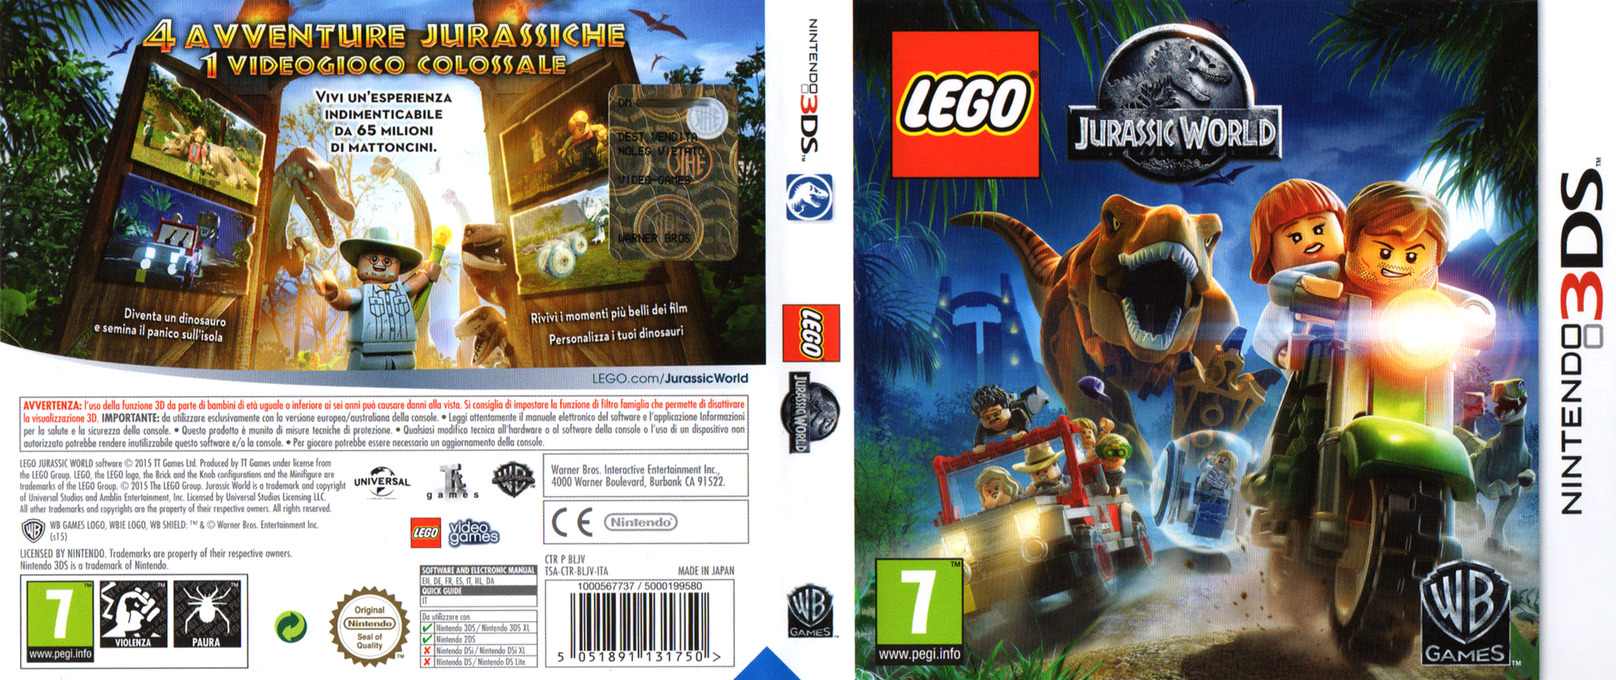 LEGO Jurassic World 3DS coverfullHQ (BLJV)